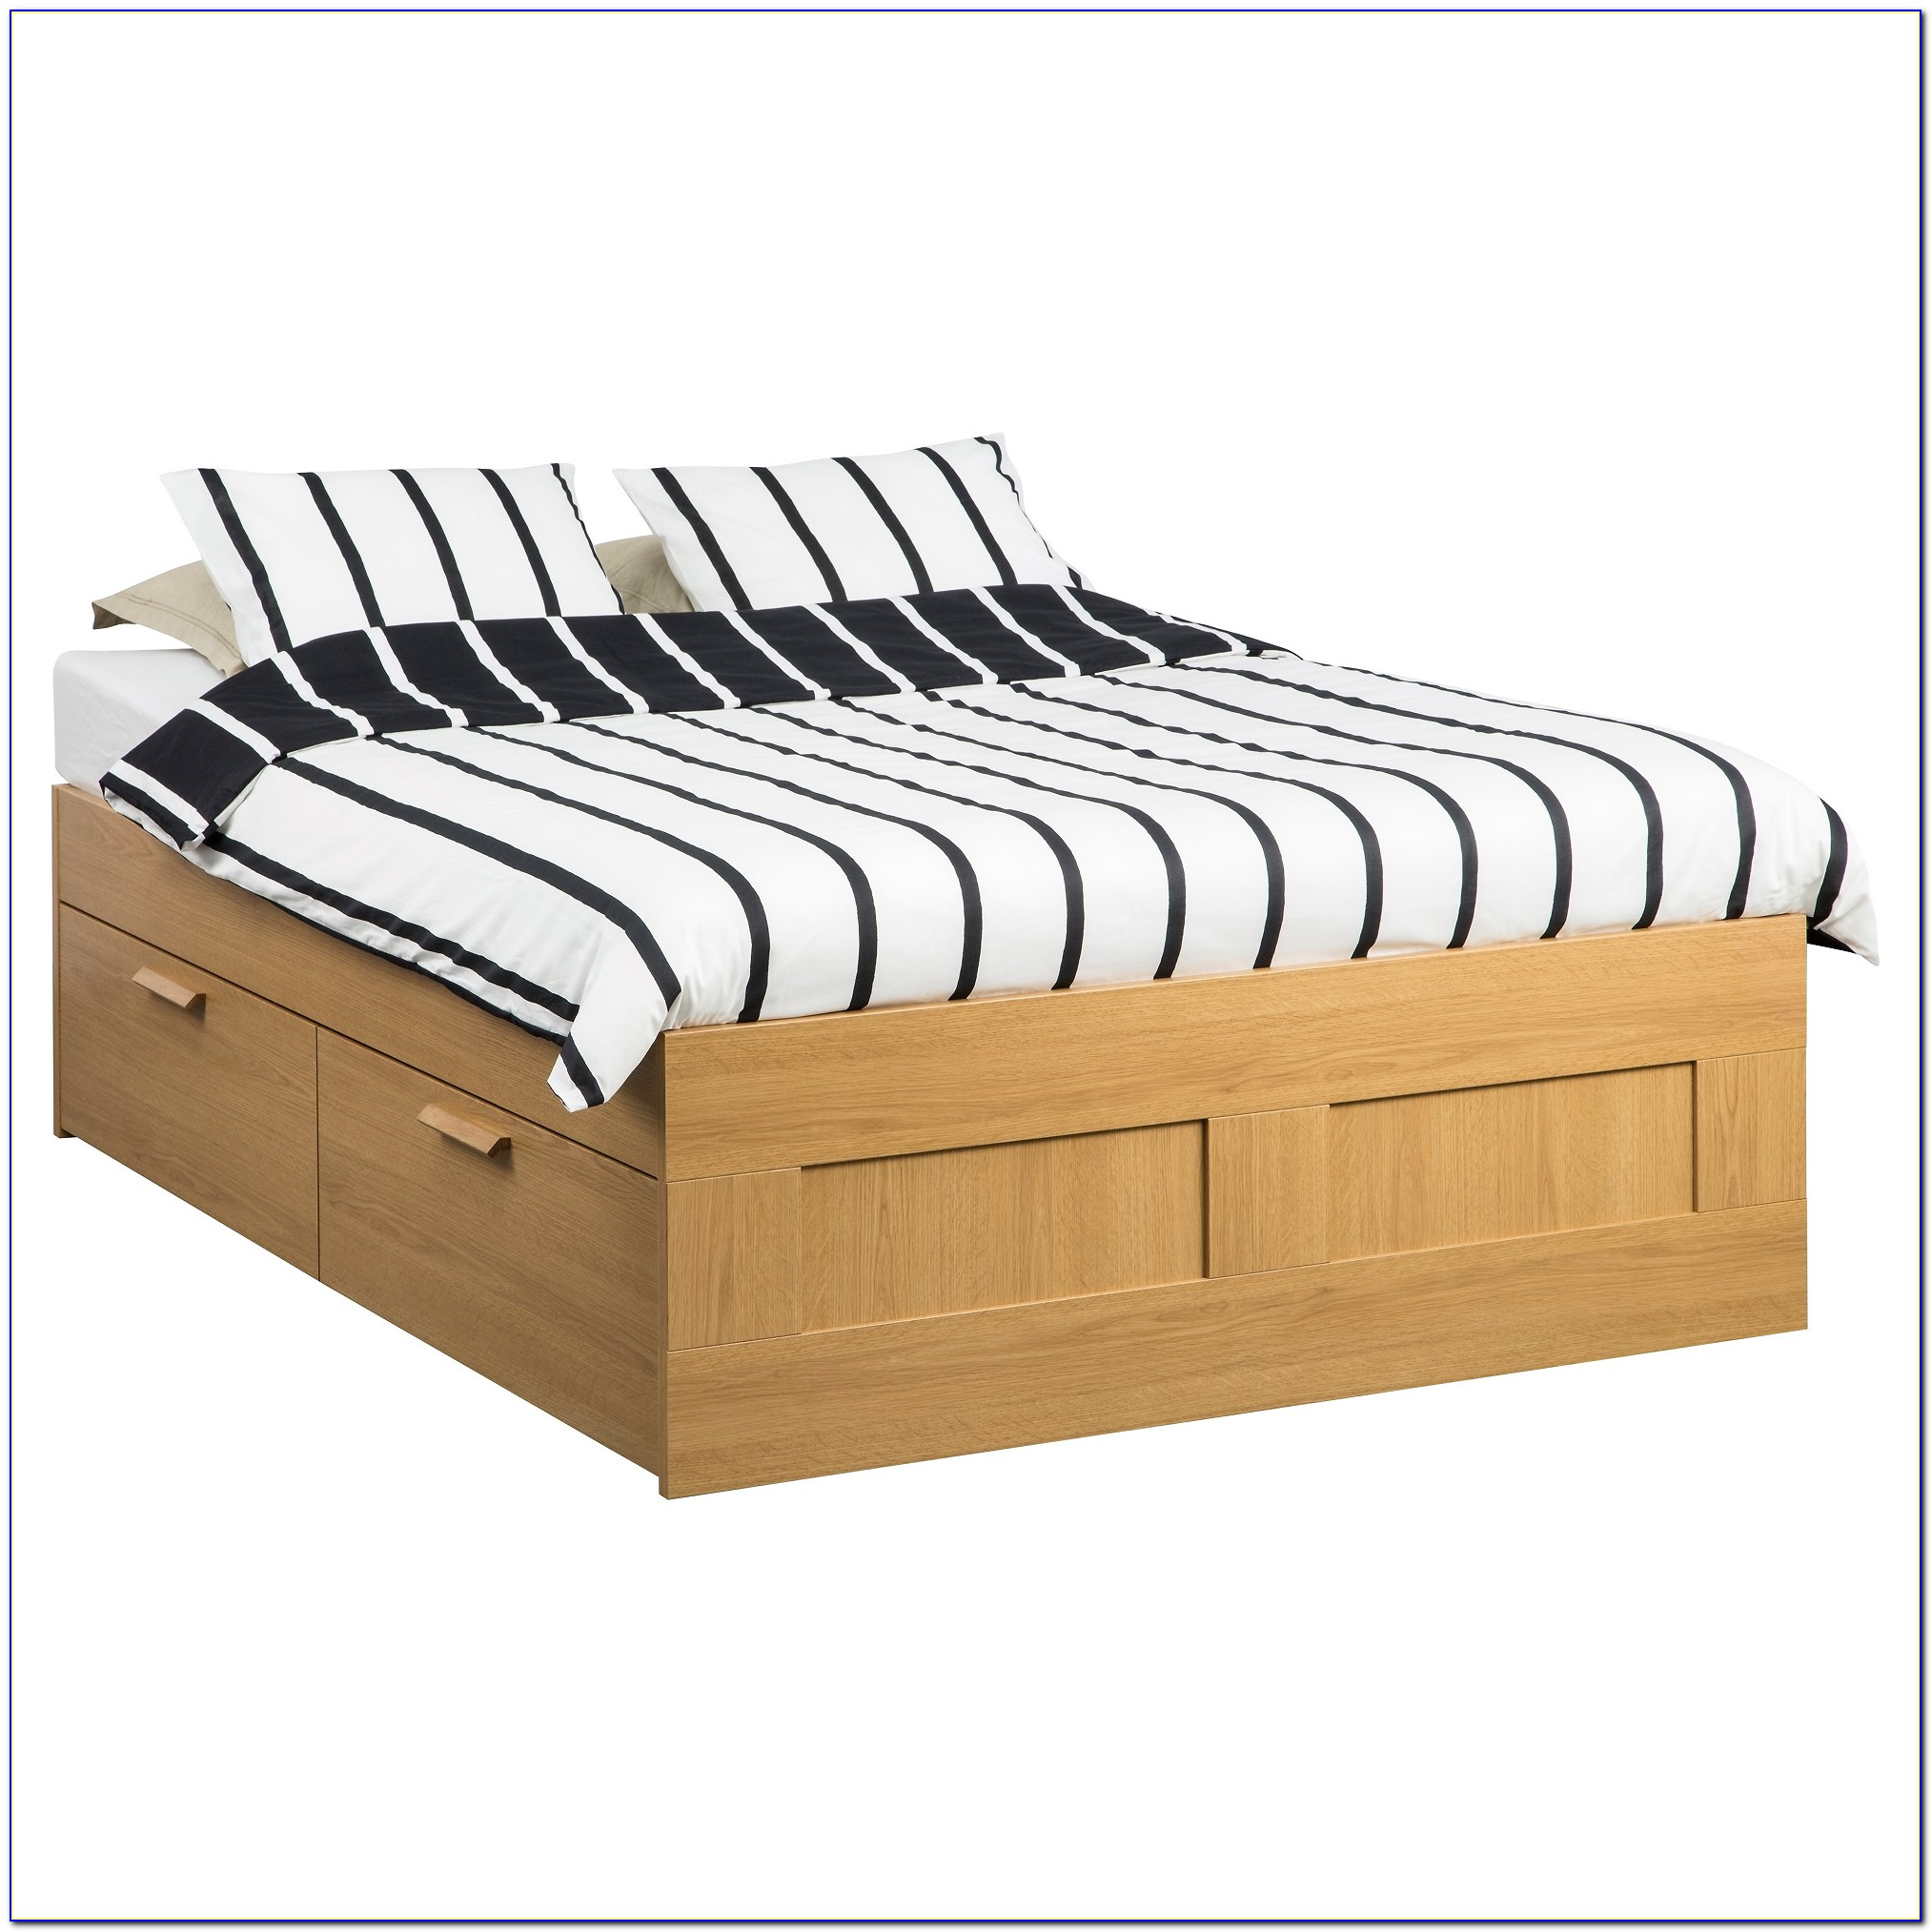 Wood Bed Frame King No Headboard